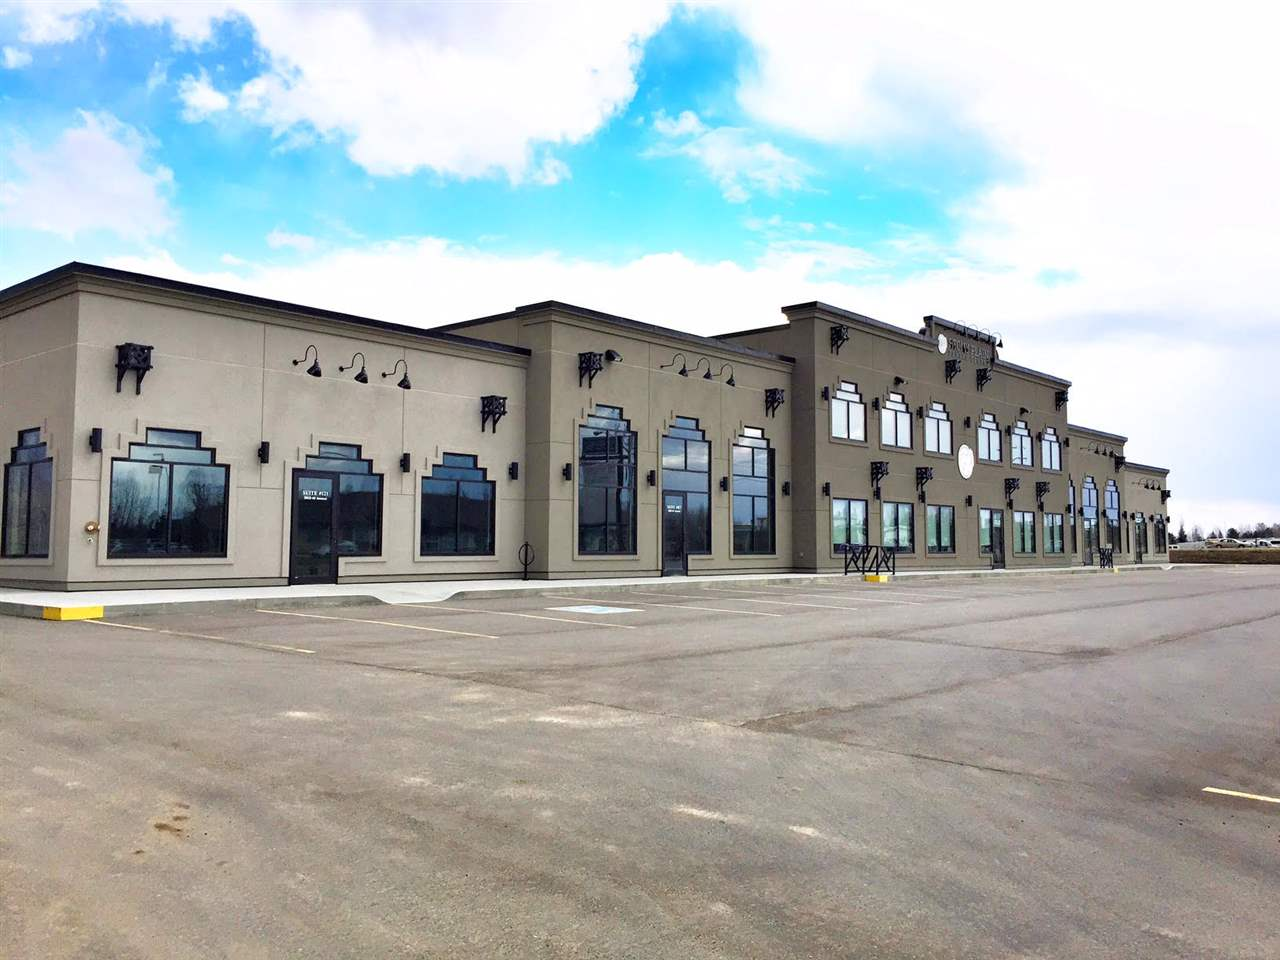 Unit 121 is located in Railway Plaza in Stony Plain, Alberta. Brand New Commercial Building. This 2440 sq ft Main Floor Unit is available for your Retail or Office Business needs. Opportunities for Medical, Retail, Restaurant or other Specialty options would be well situated on this High Traffic location. Building offers Rear Unit Access as well as OverHead & Man Doors. Great Opportunity to get into this Brand New - Modern - Well Designed Building. Zoned C-2, Commercial General.